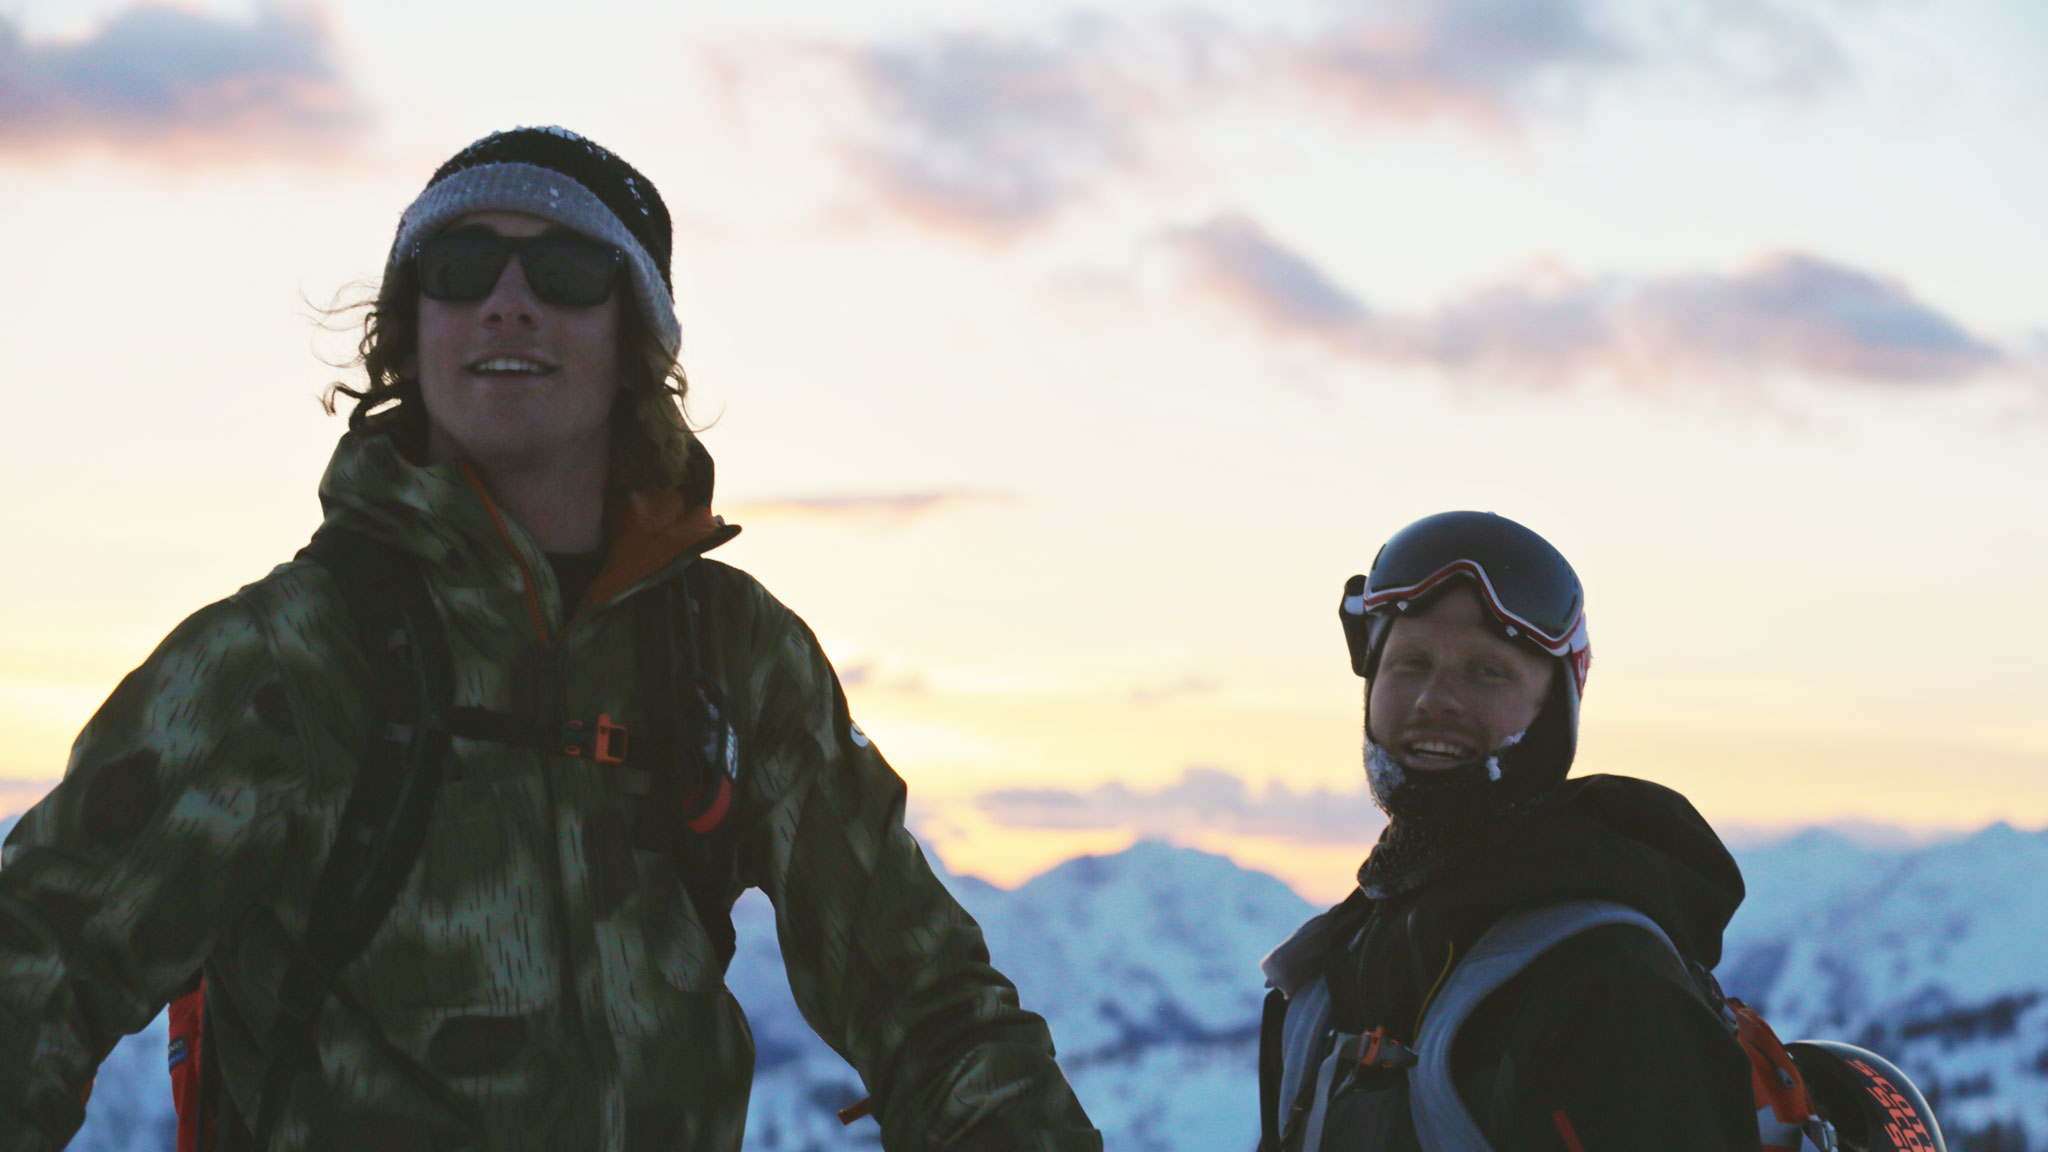 Sammy Carlson and Dane Tudor filming in Revelstoke, BC, earlier this winter.